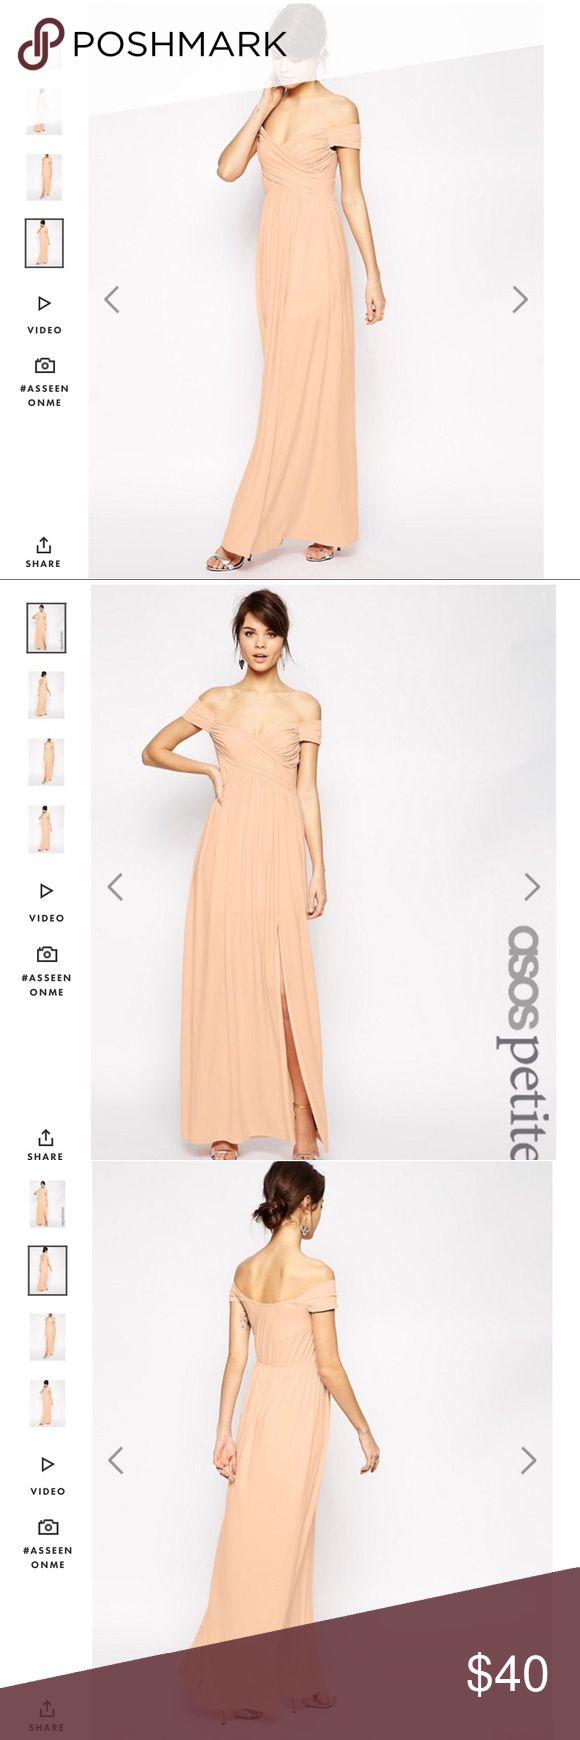 Petite Off the Shoulder Maxi Dress Petite Off the Shoulder Maxi Dress. Color is nude/pale pink. Front slit. Lined. Worn once as a wedding guest. This is also perfect as a bridesmaid or prom dress. ASOS Petite Dresses Wedding